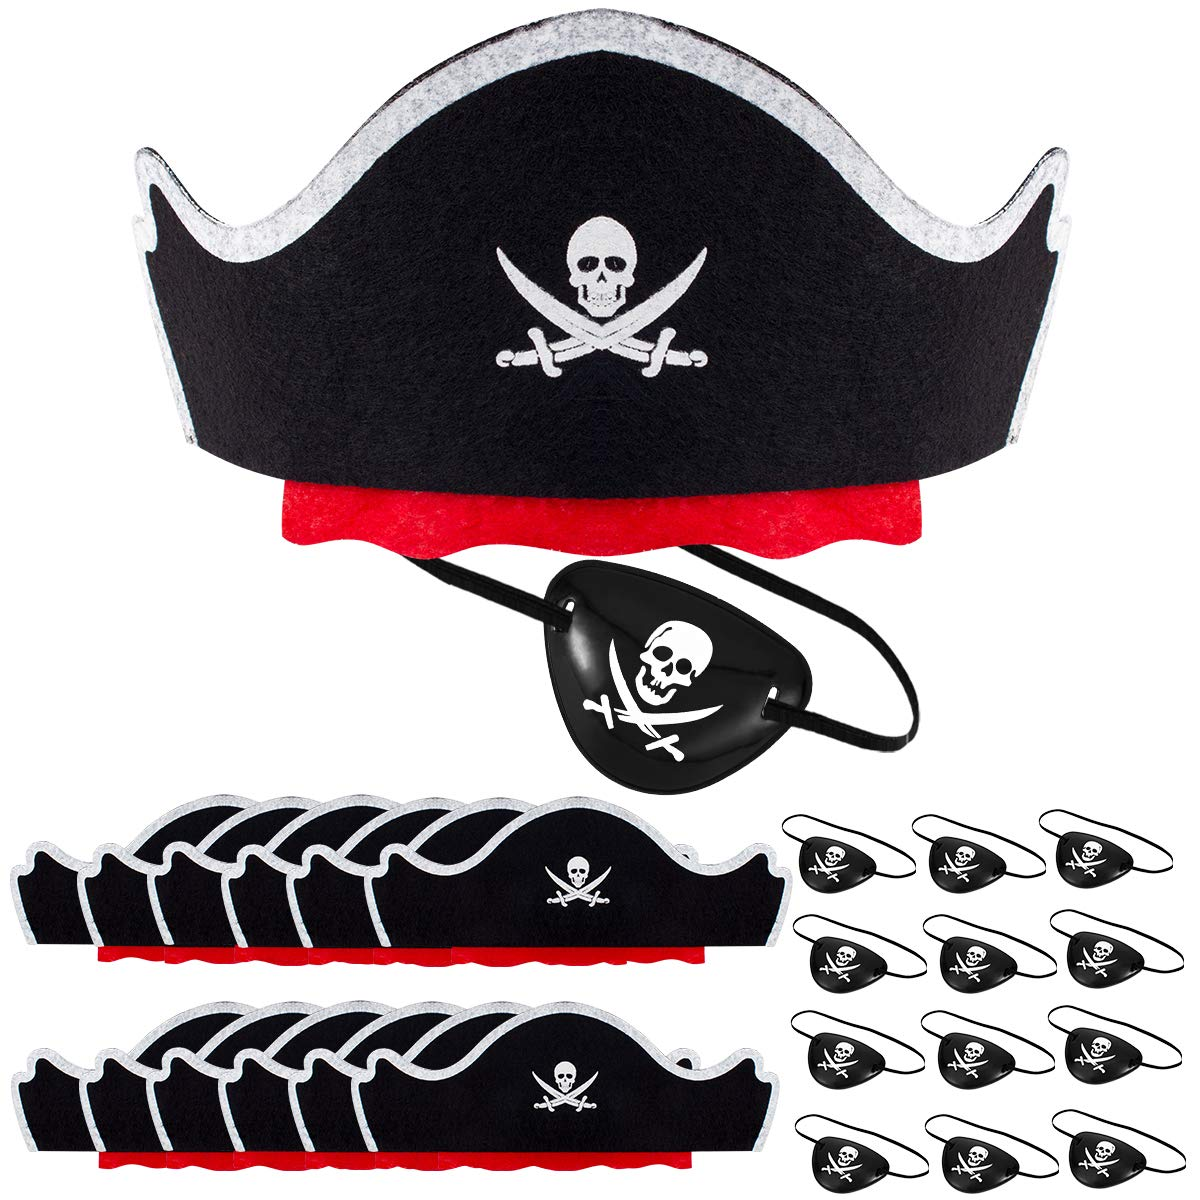 Alphatool 24 Pcs Skull Print Pirate Hats Eye Patches Set, 12 Pieces Caribbean Pirate Captain Hat& 12 Pieces Black Pirate Eye Mask for Pirate Party, Cosplay, Dress Up Theme Party, Halloween Decorations by Alphatool